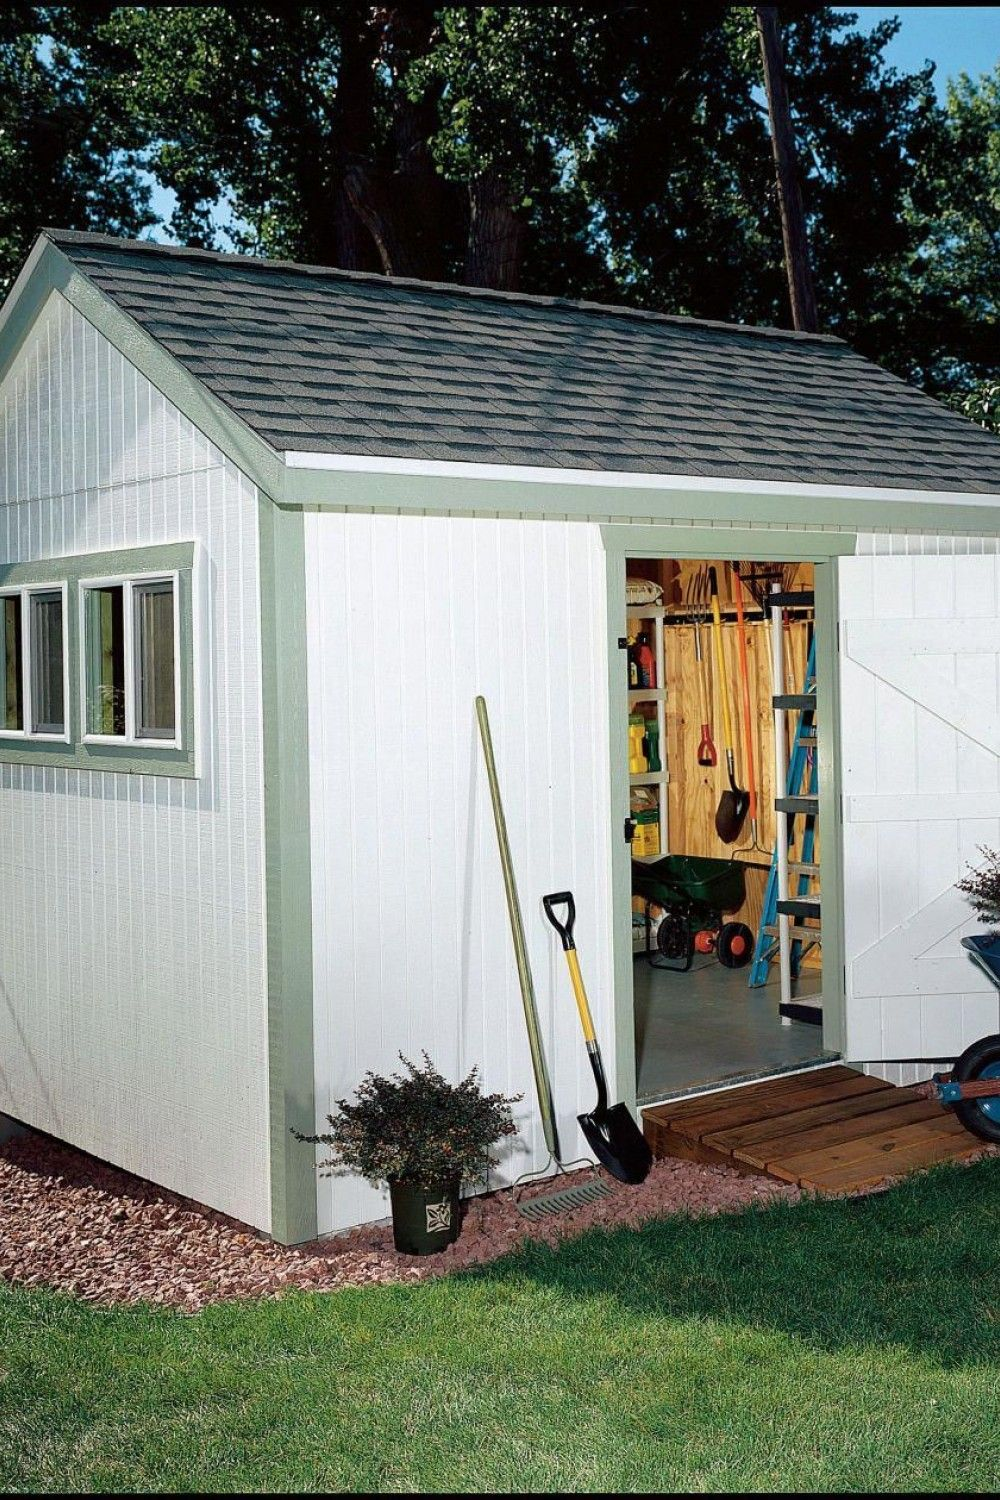 32 Inspirational Roof Ideas For Garden Shed Shed Roof Design Shed With Porch Shed Roof Repair